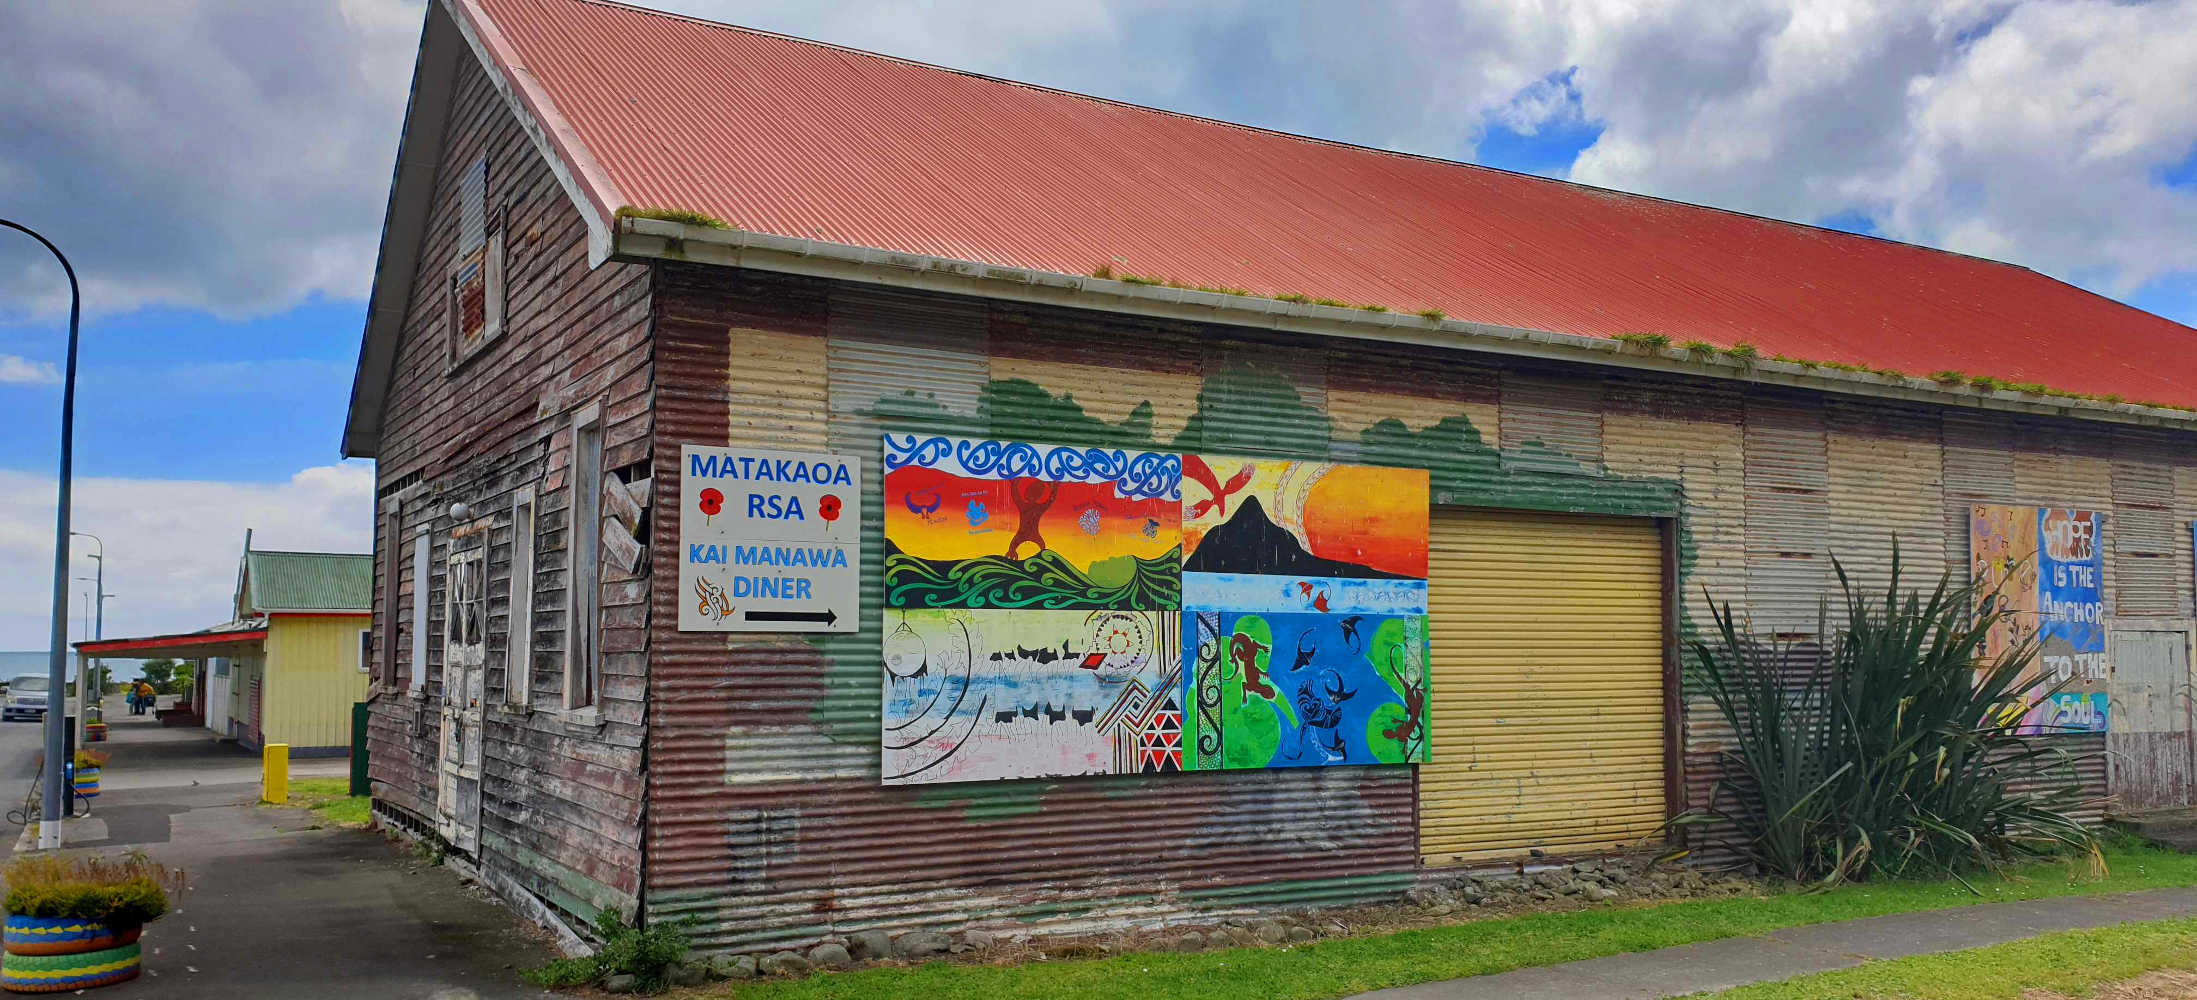 Te Araroa streetscape with an abandoned building and cheerful side art,New Zealand